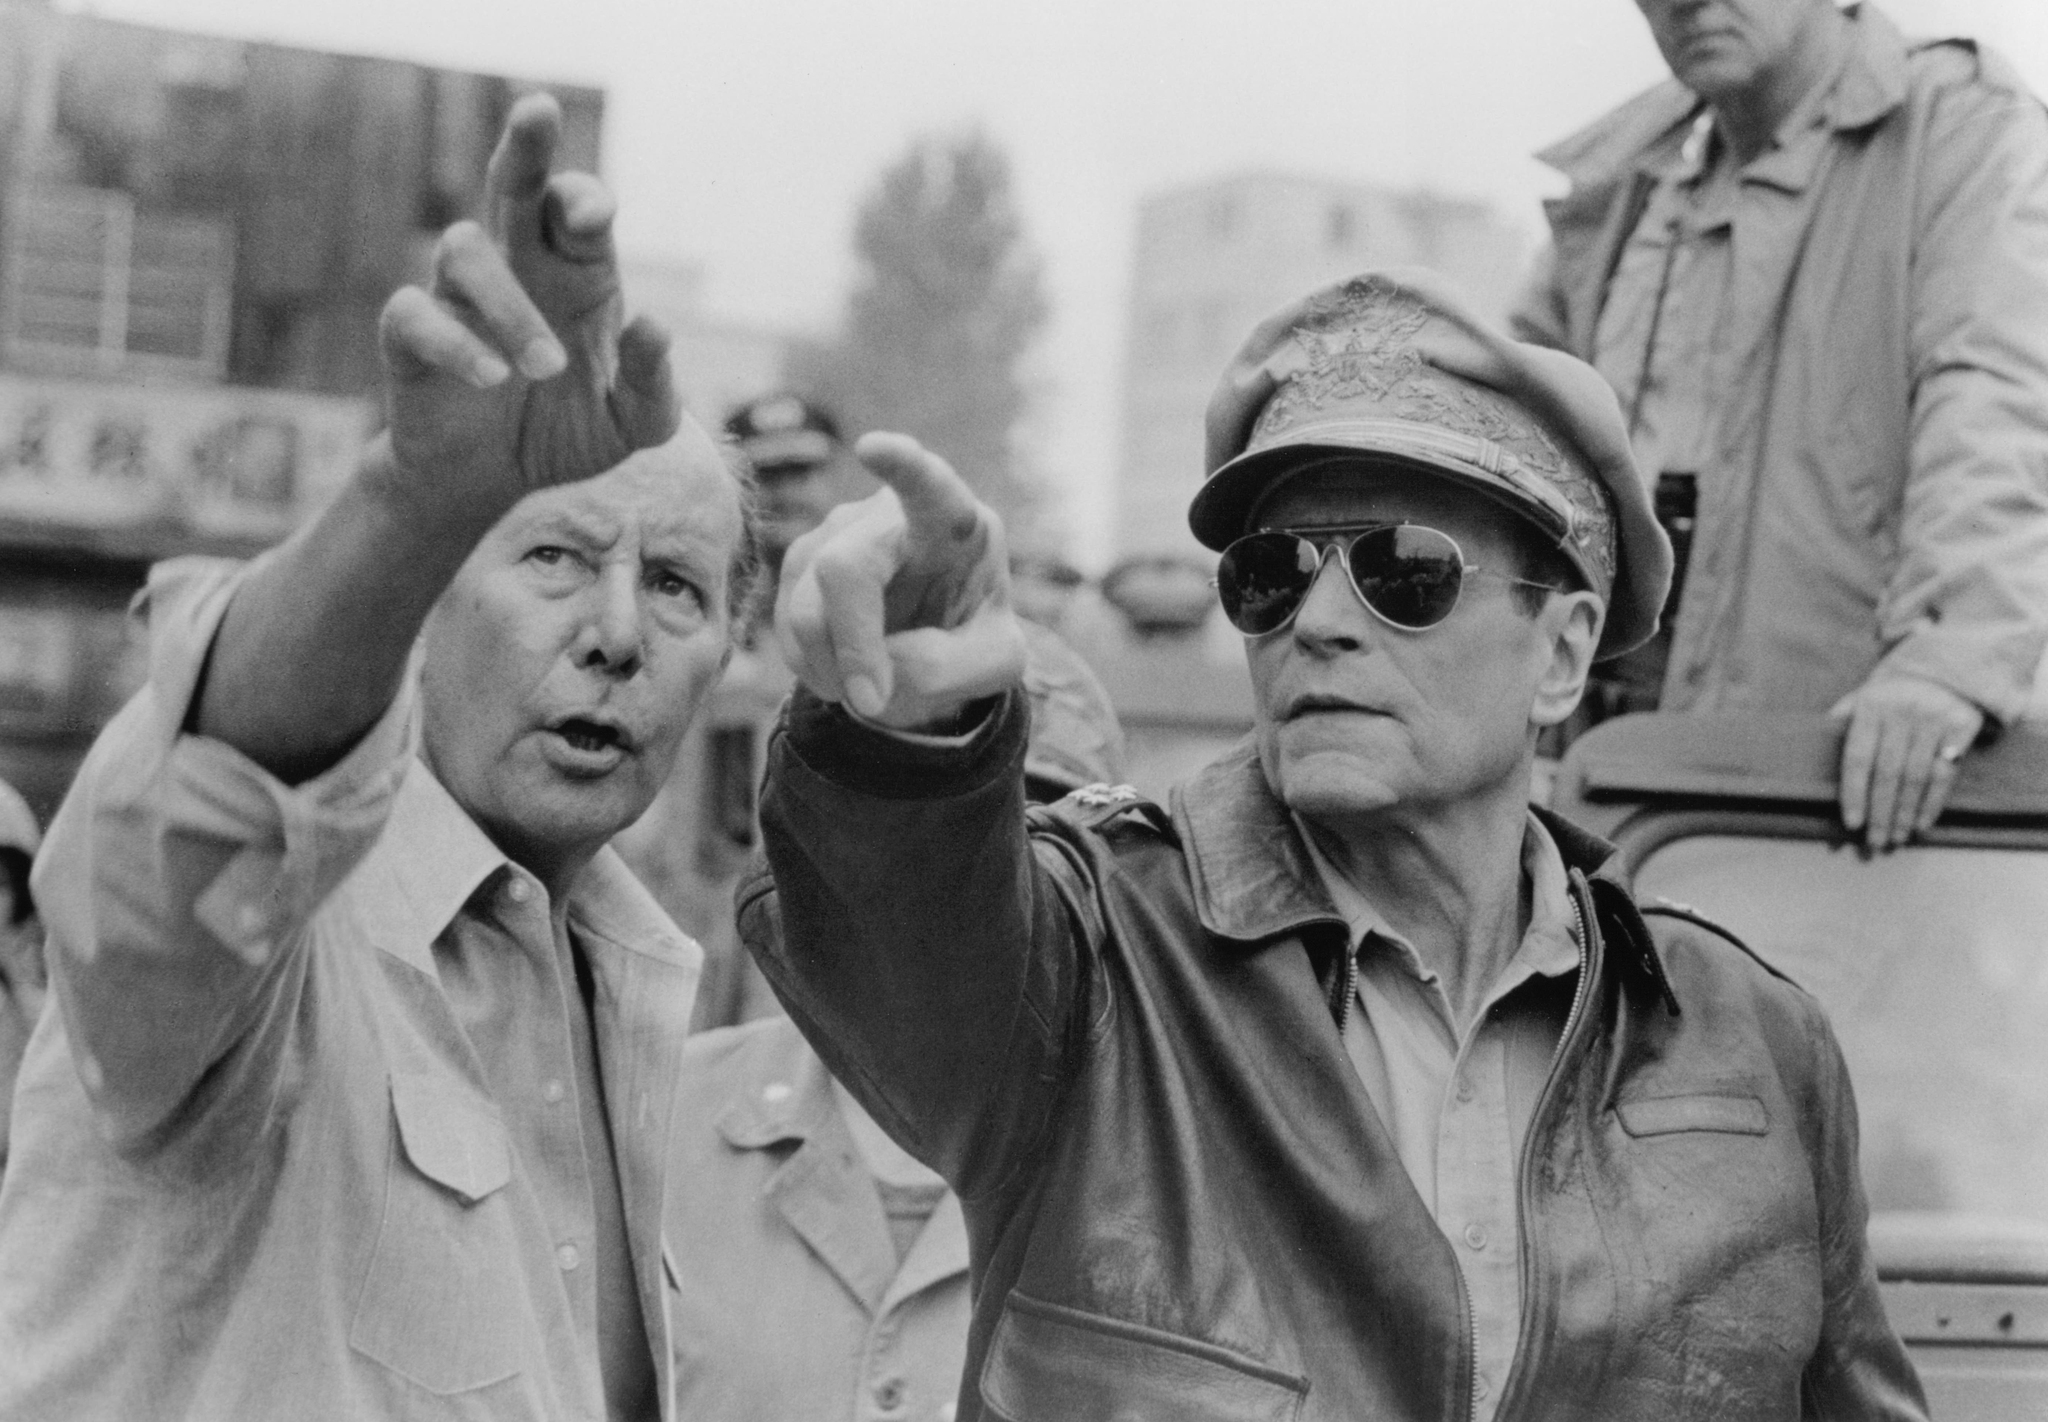 Laurence Olivier and Terence Young in Inchon (1981)